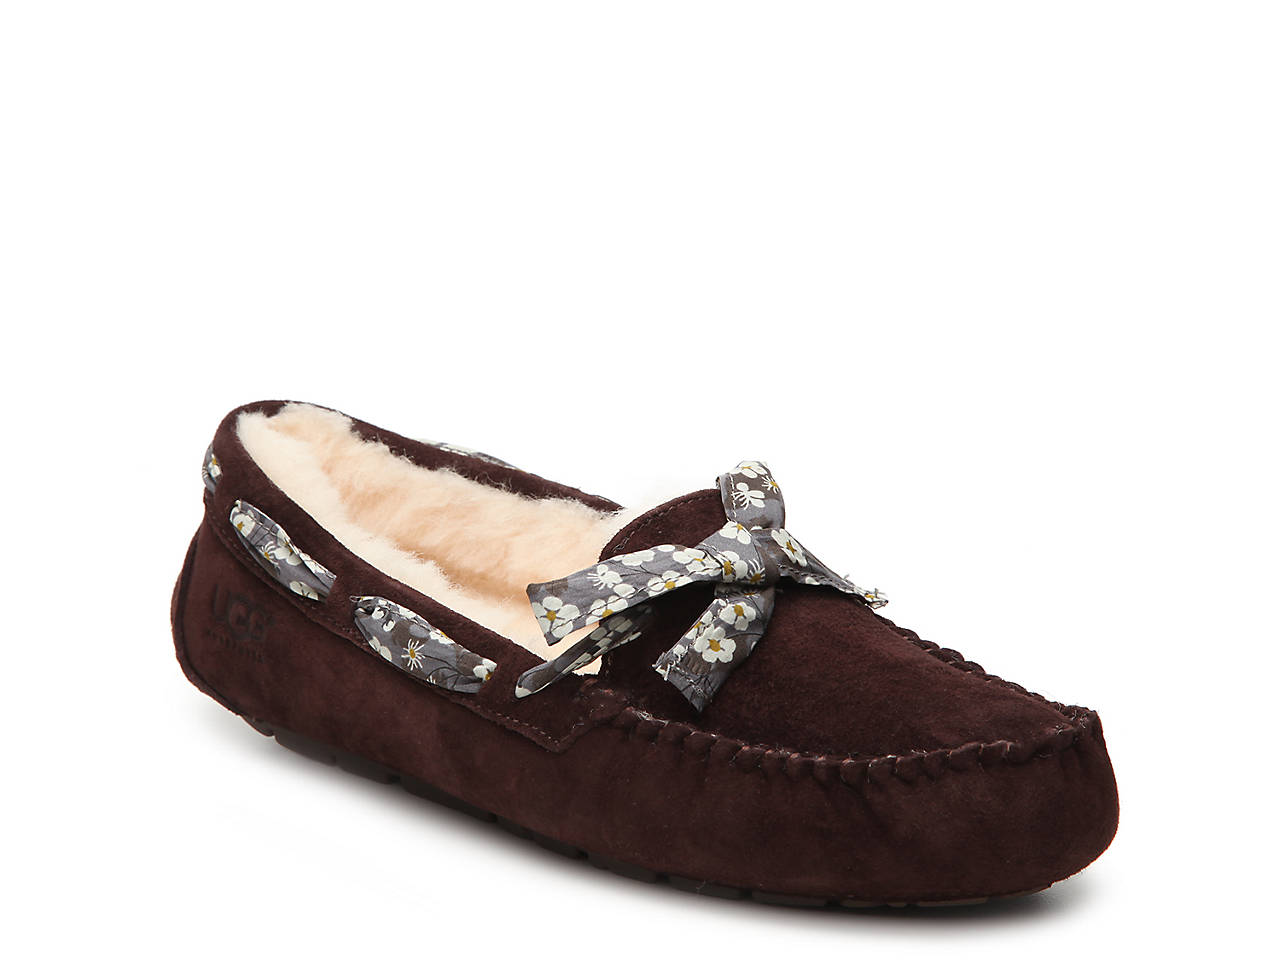 UGG Australia Suede Dakota Loafers